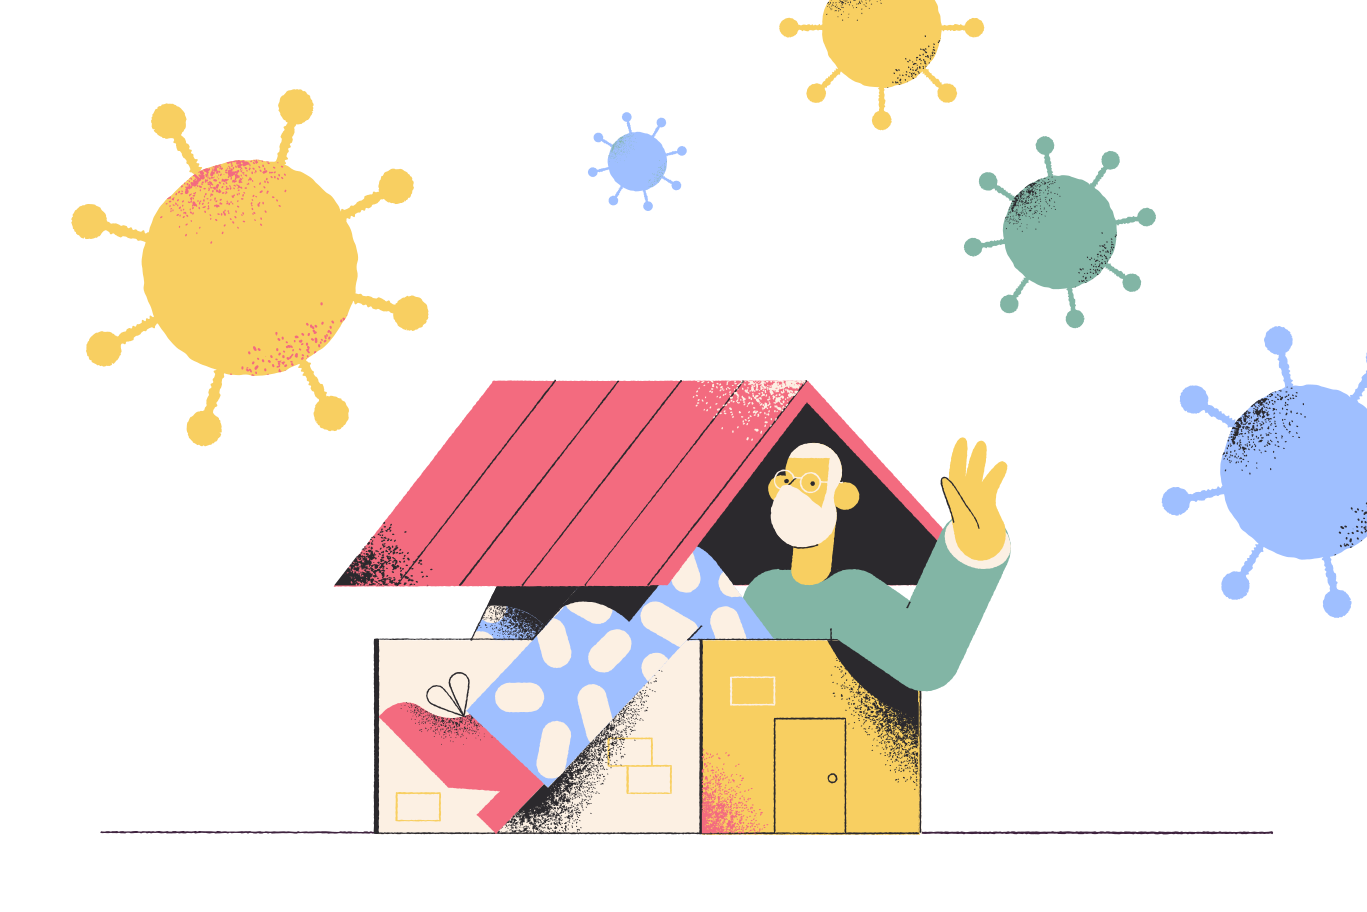 style Staying home Vector images in PNG and SVG | Icons8 Illustrations